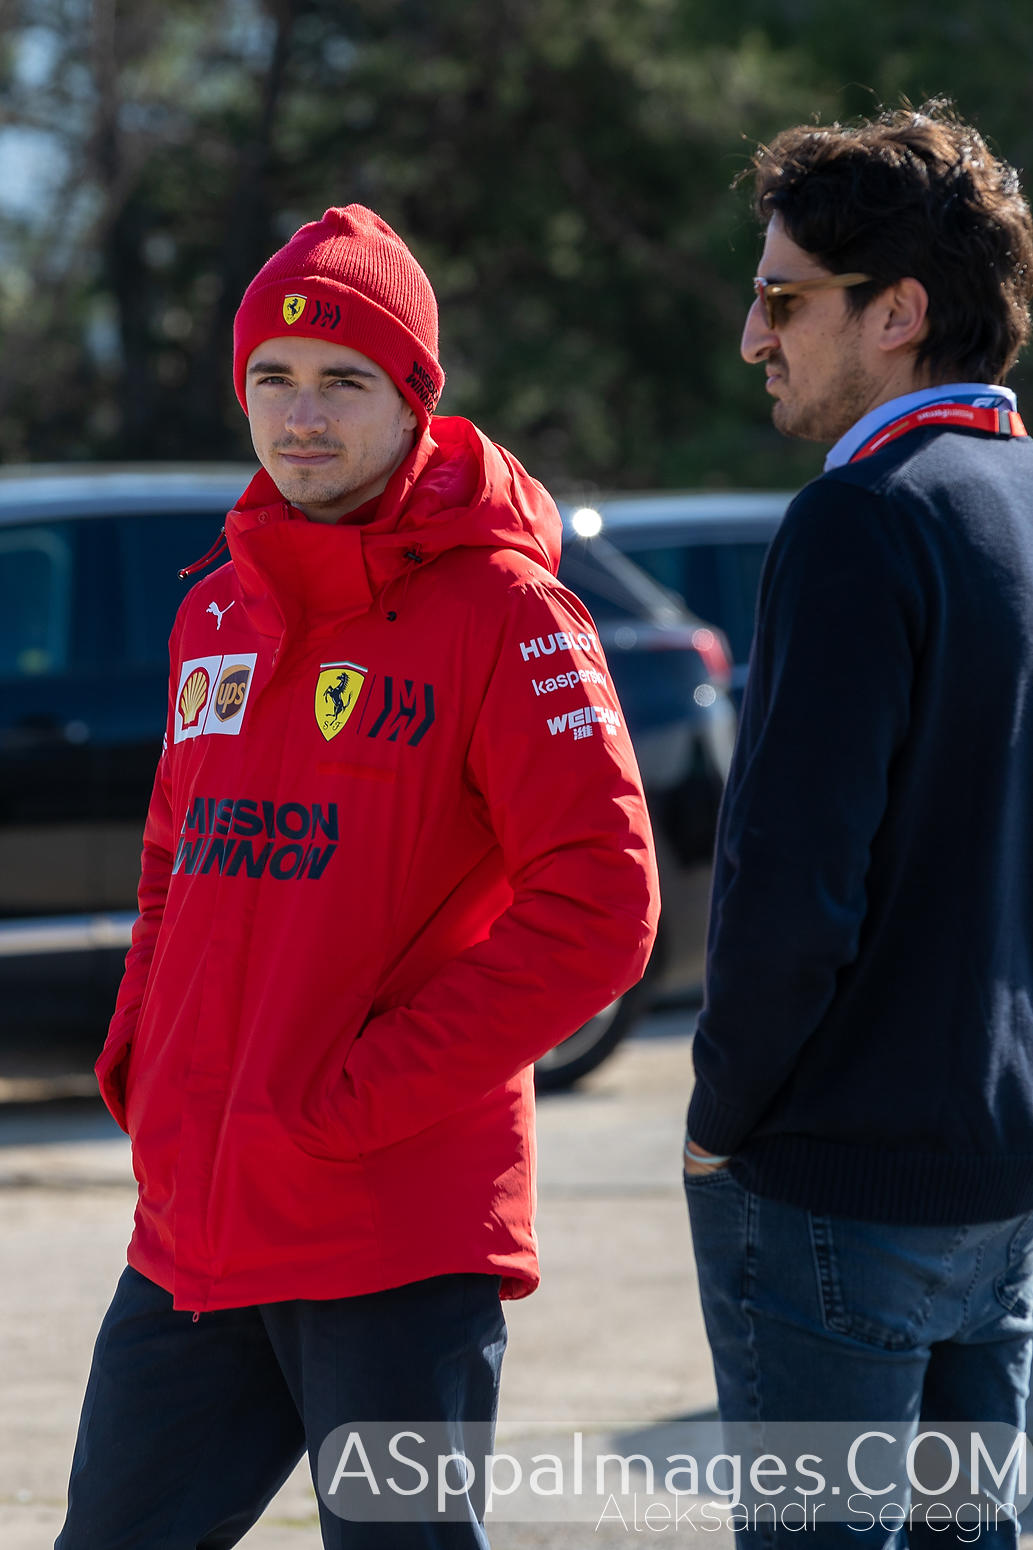 157.2020.FIA.F1.Test.Barcelona.Day.4.FER.ASppaImges.COM by ASppaImages.COM | Aleksandr B. Seregin (c).